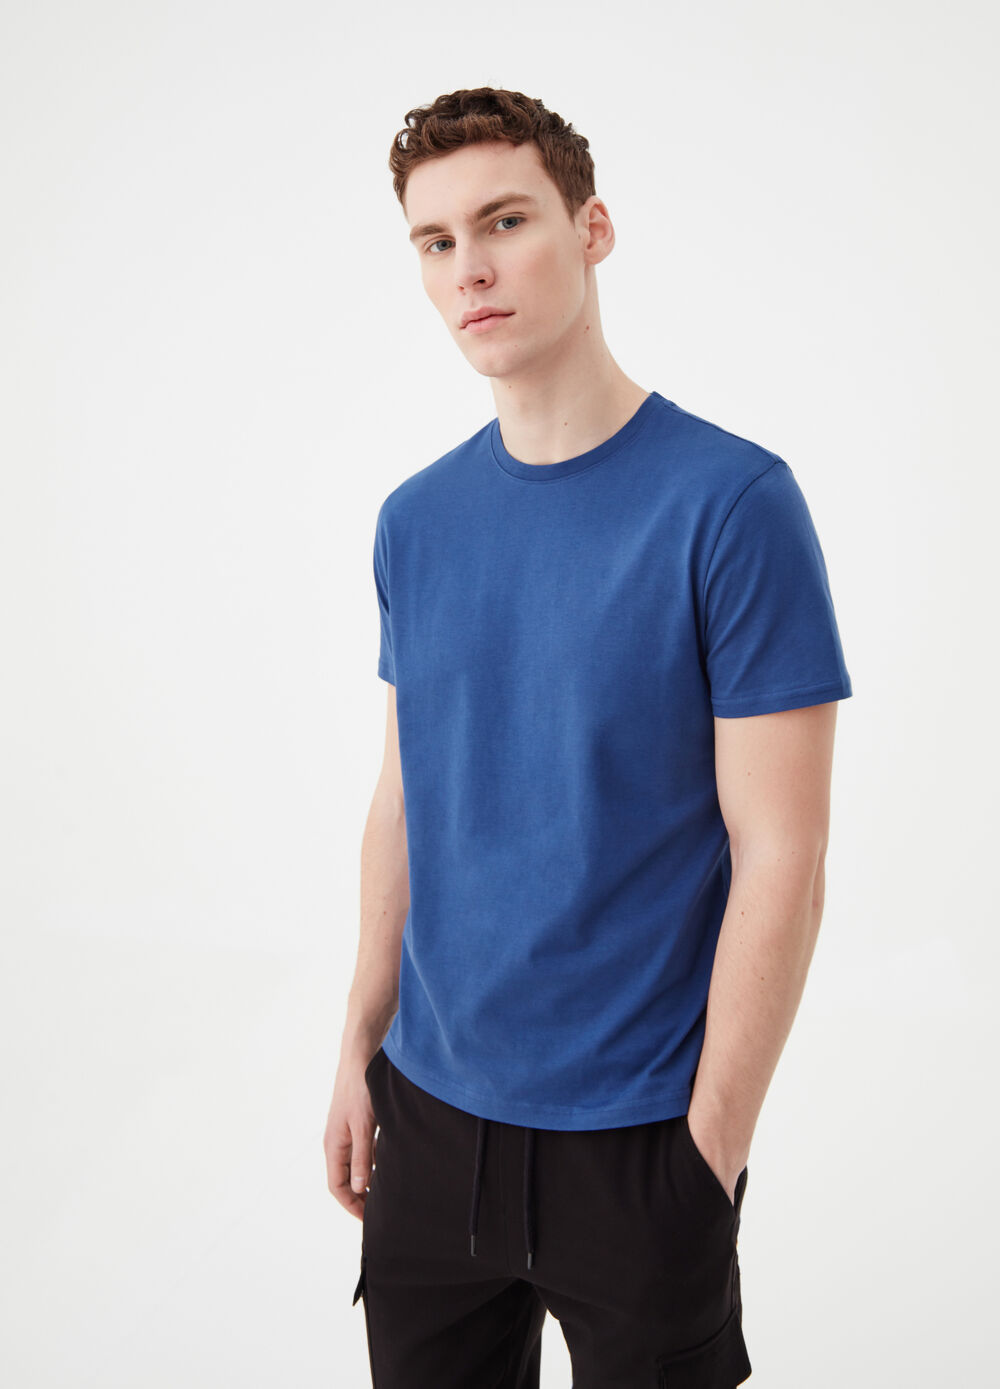 T-shirt in 100% pima cotton jersey